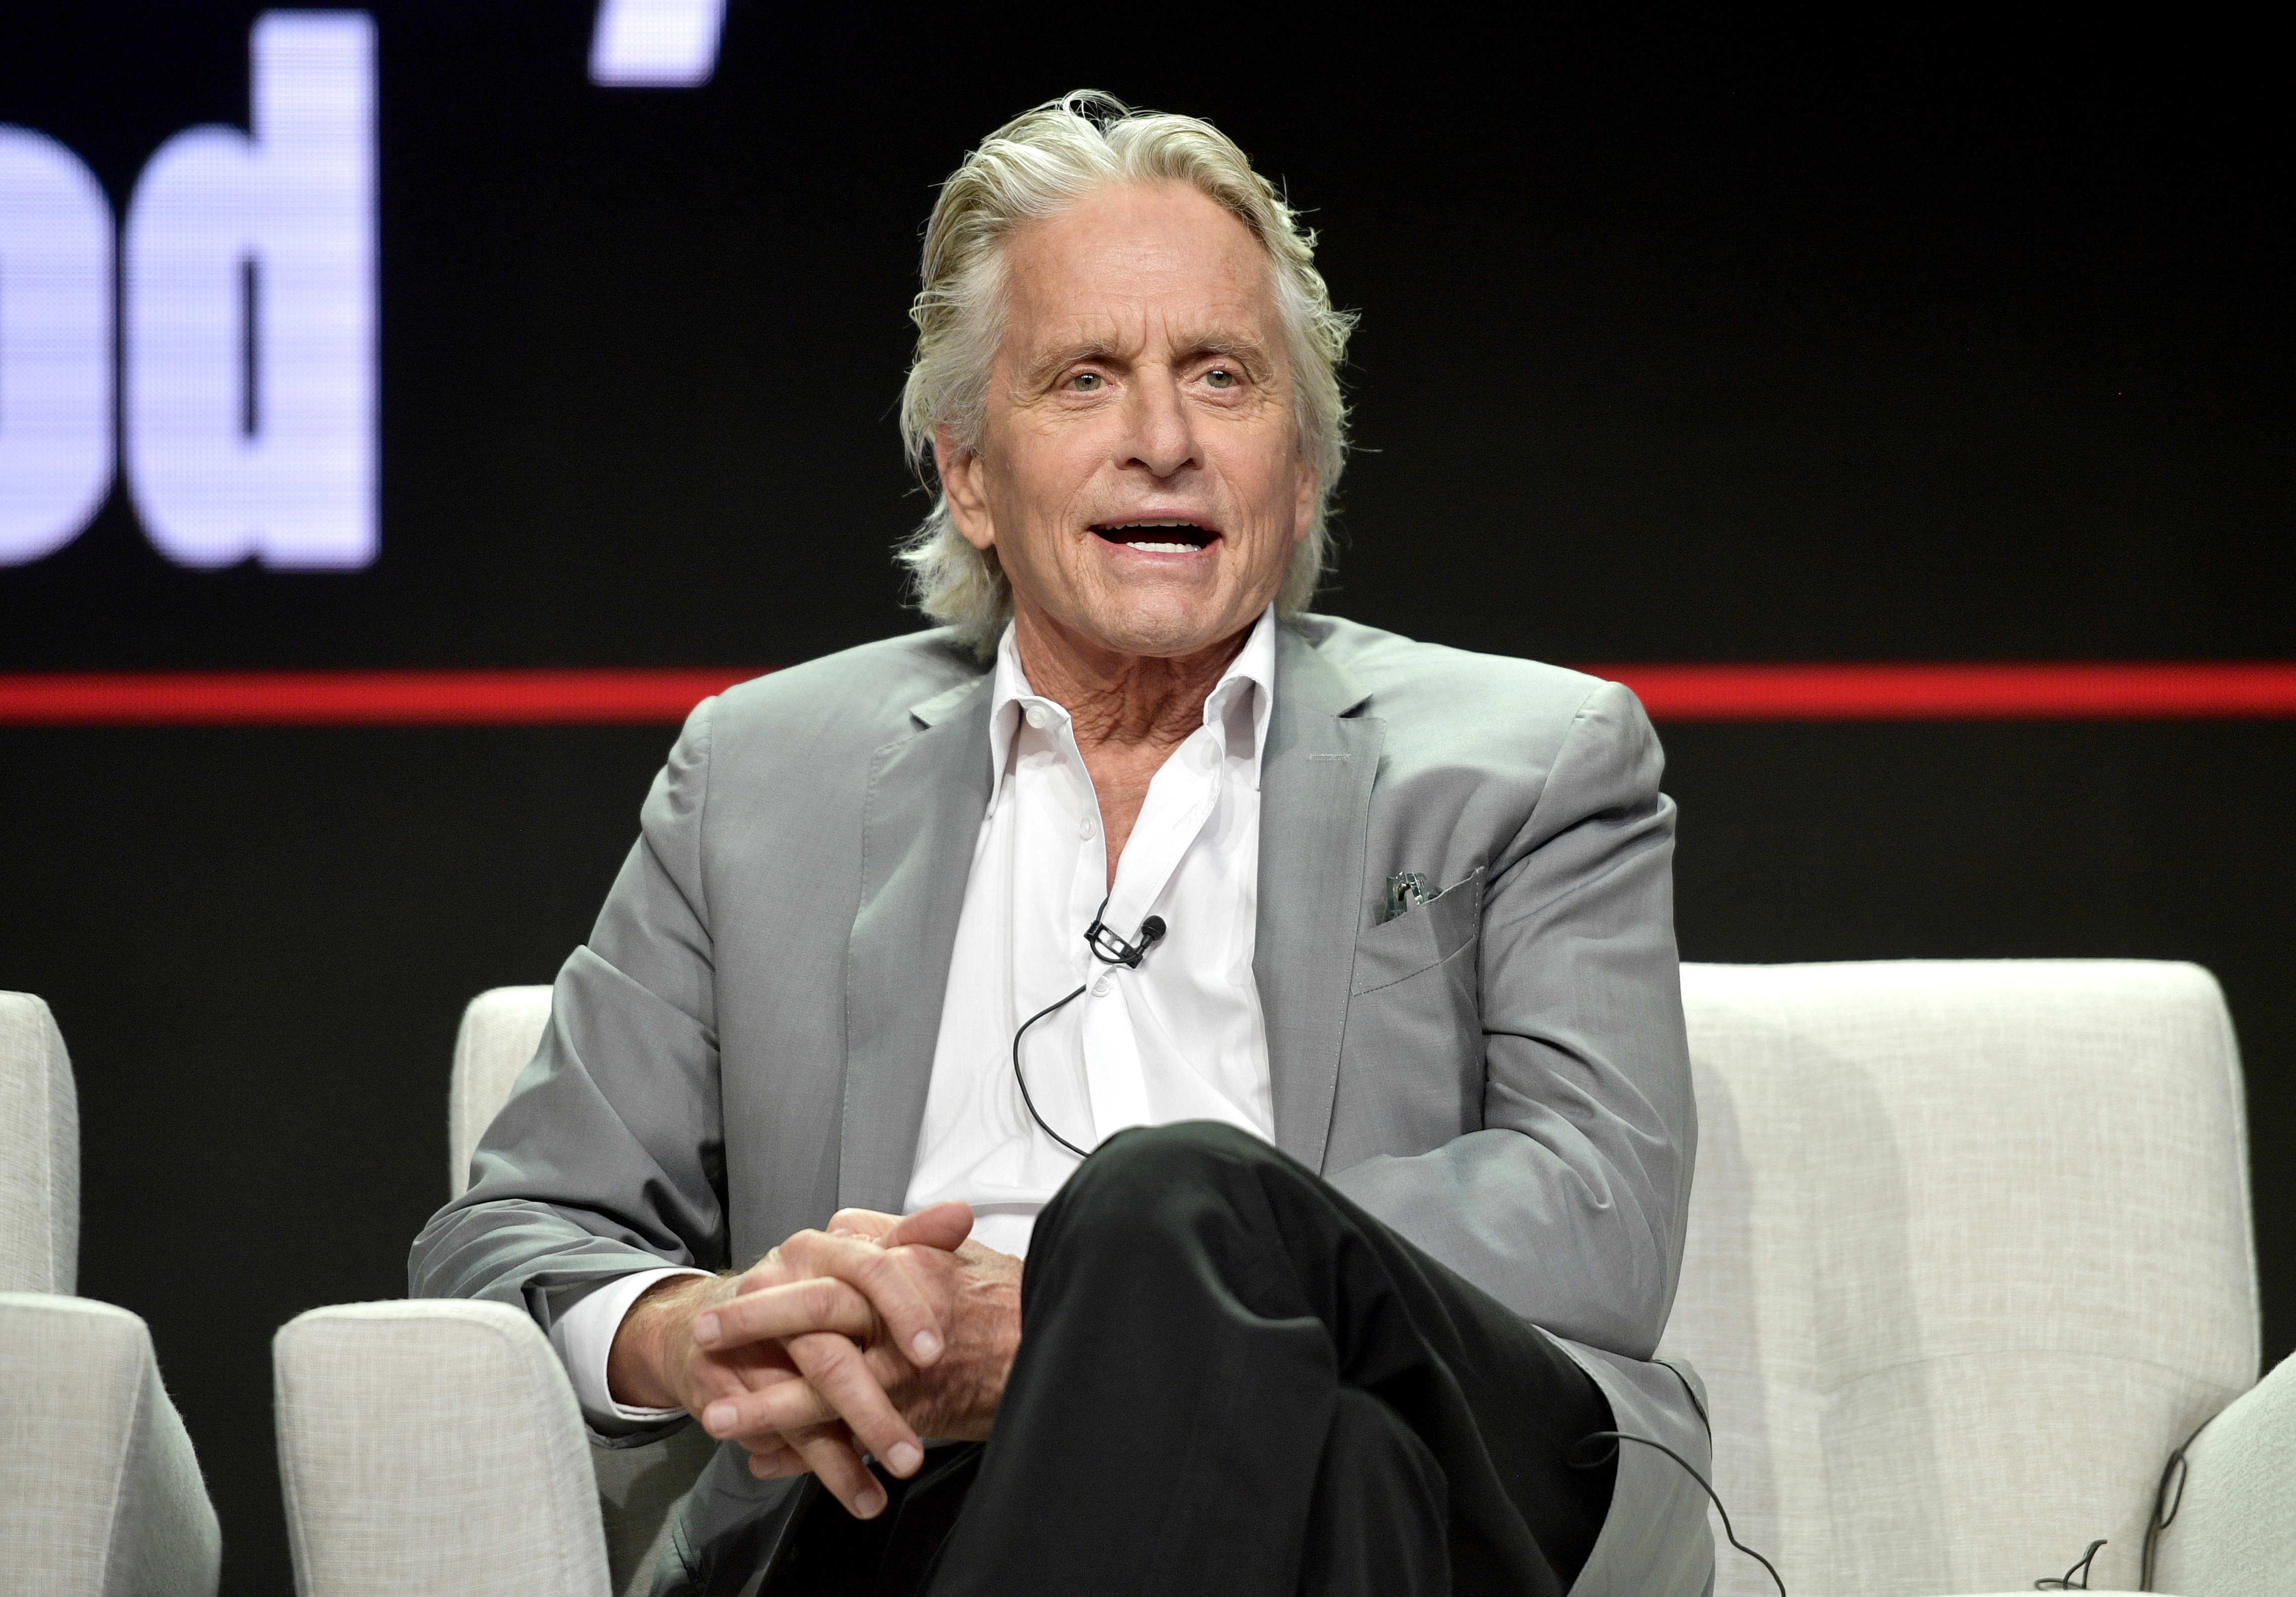 Michael Douglas of 'The Kominsky Method' speaks onstage during Netflix TCA 2018 at The Beverly Hilton Hotel on July 29, 2018 in Beverly Hills, California.